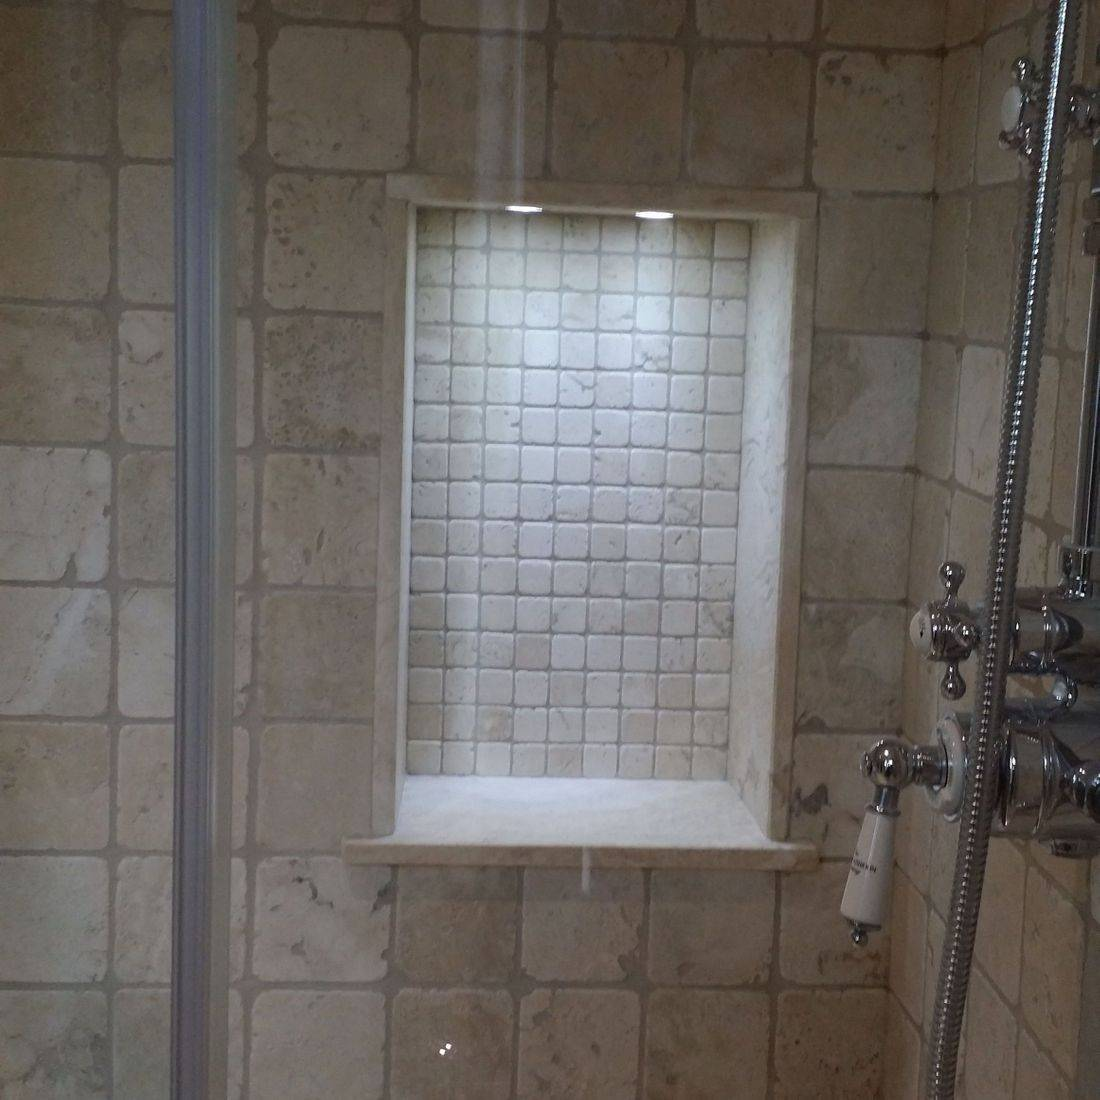 shower tiled niche,bathroom renovation,tiles,tiler,fitting,tiling,mosaic,